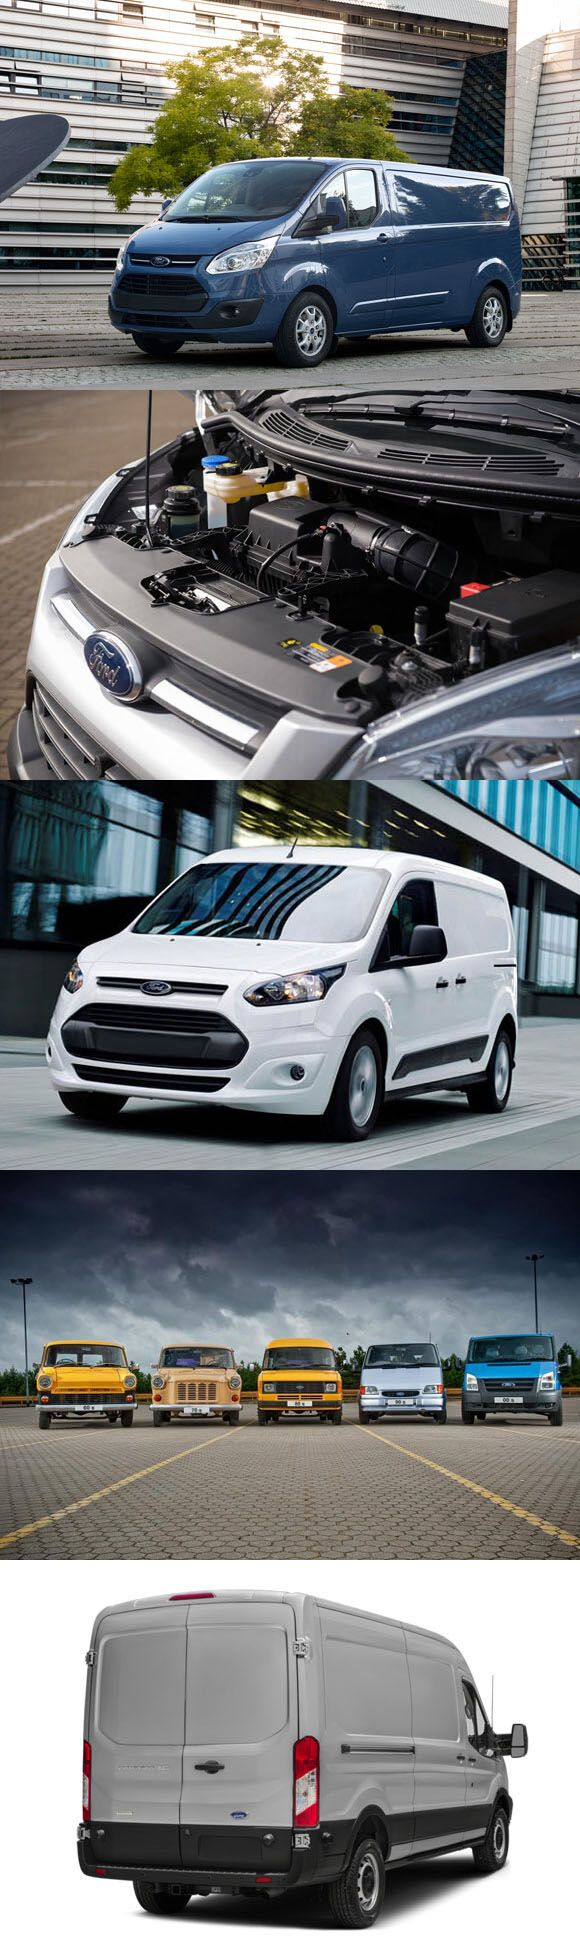 ford transit mk6engine is simply stunning read full blog www fordtransitengines